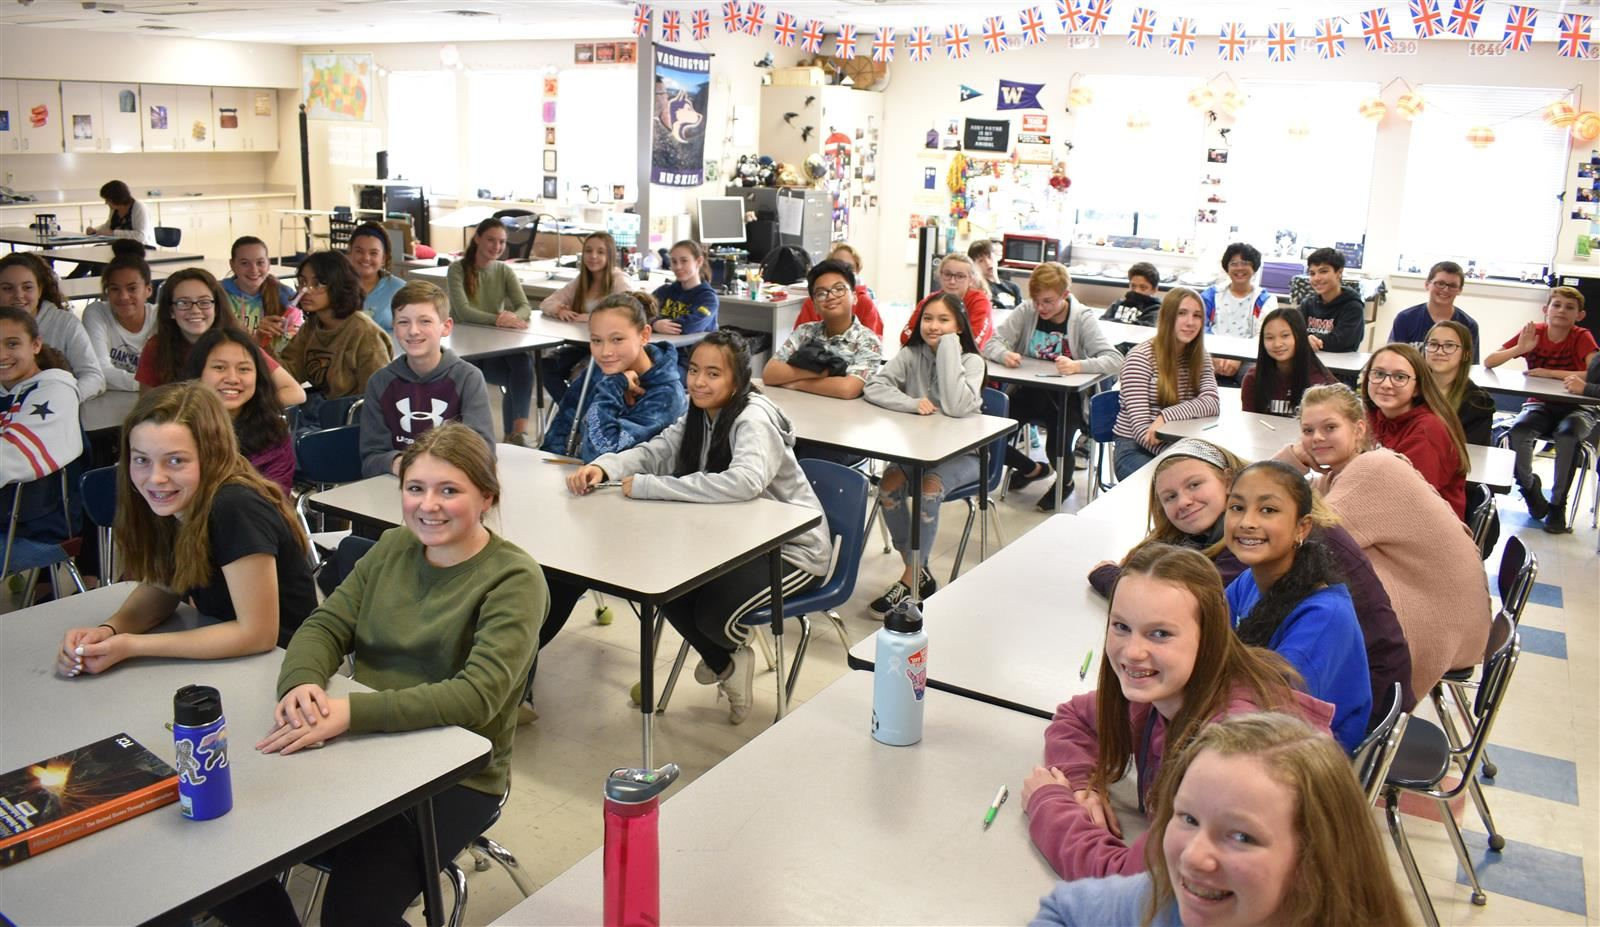 The NJHS students smile in the classroom.